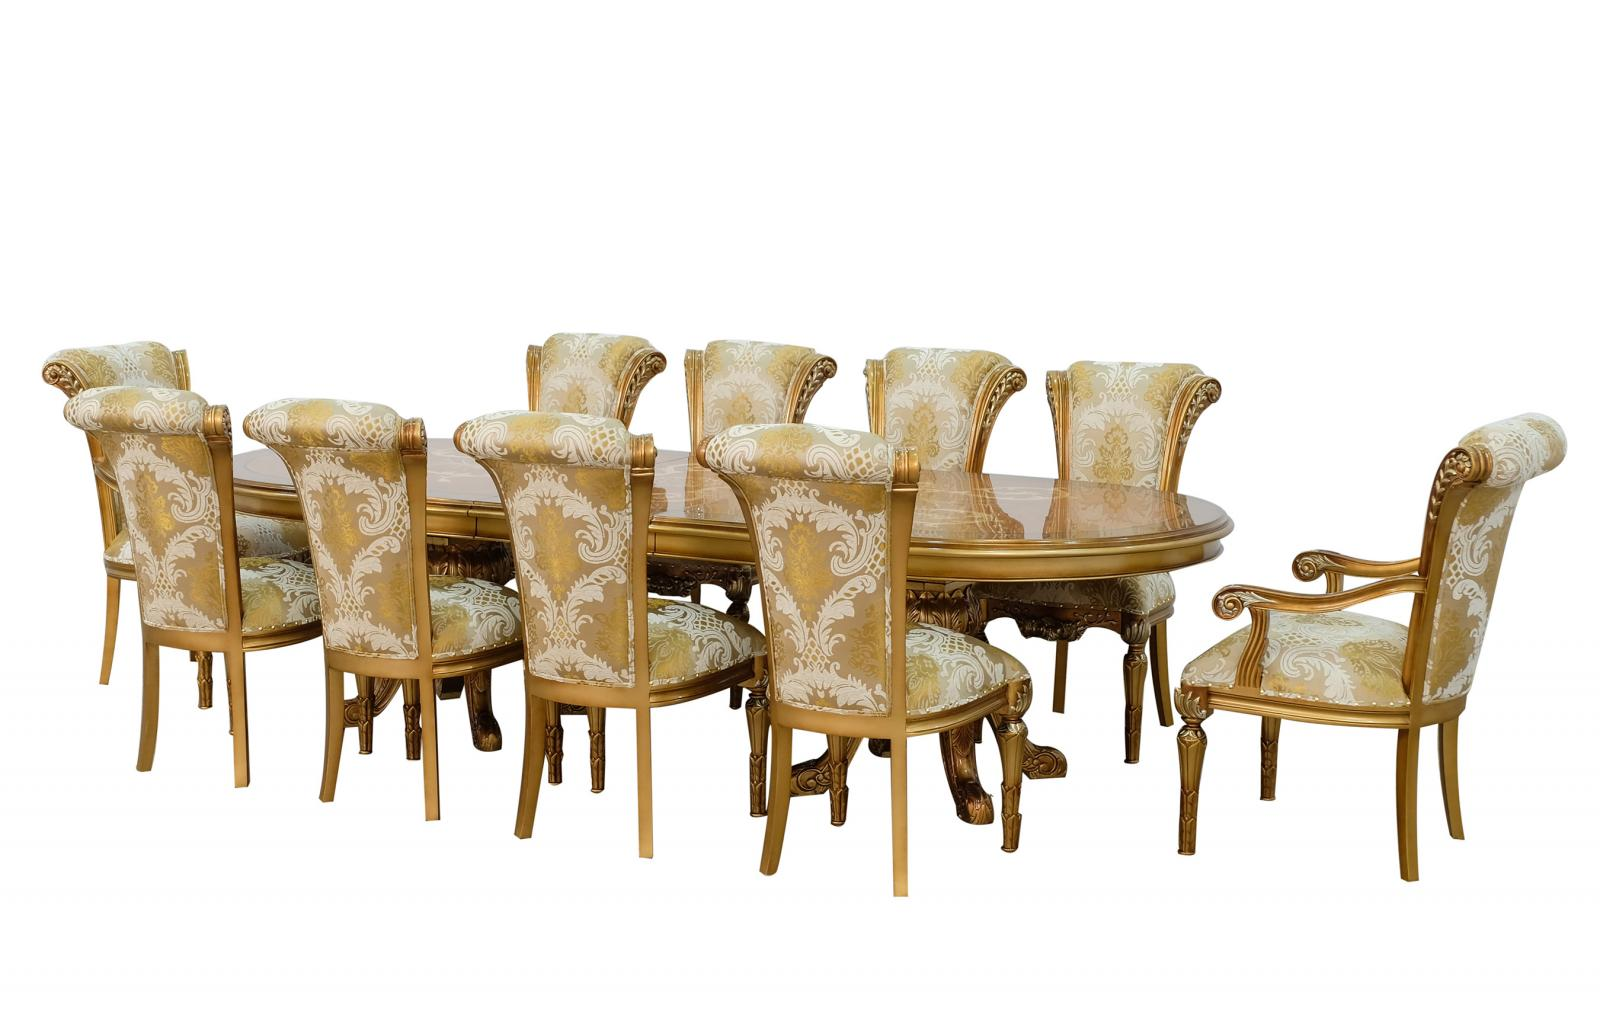 Classic, Traditional Bronze, Gold, Ebony Fabric and Wood, Solid Hardwood Dining Table Set 11 pcs MAGGIOLINI by European Furniture